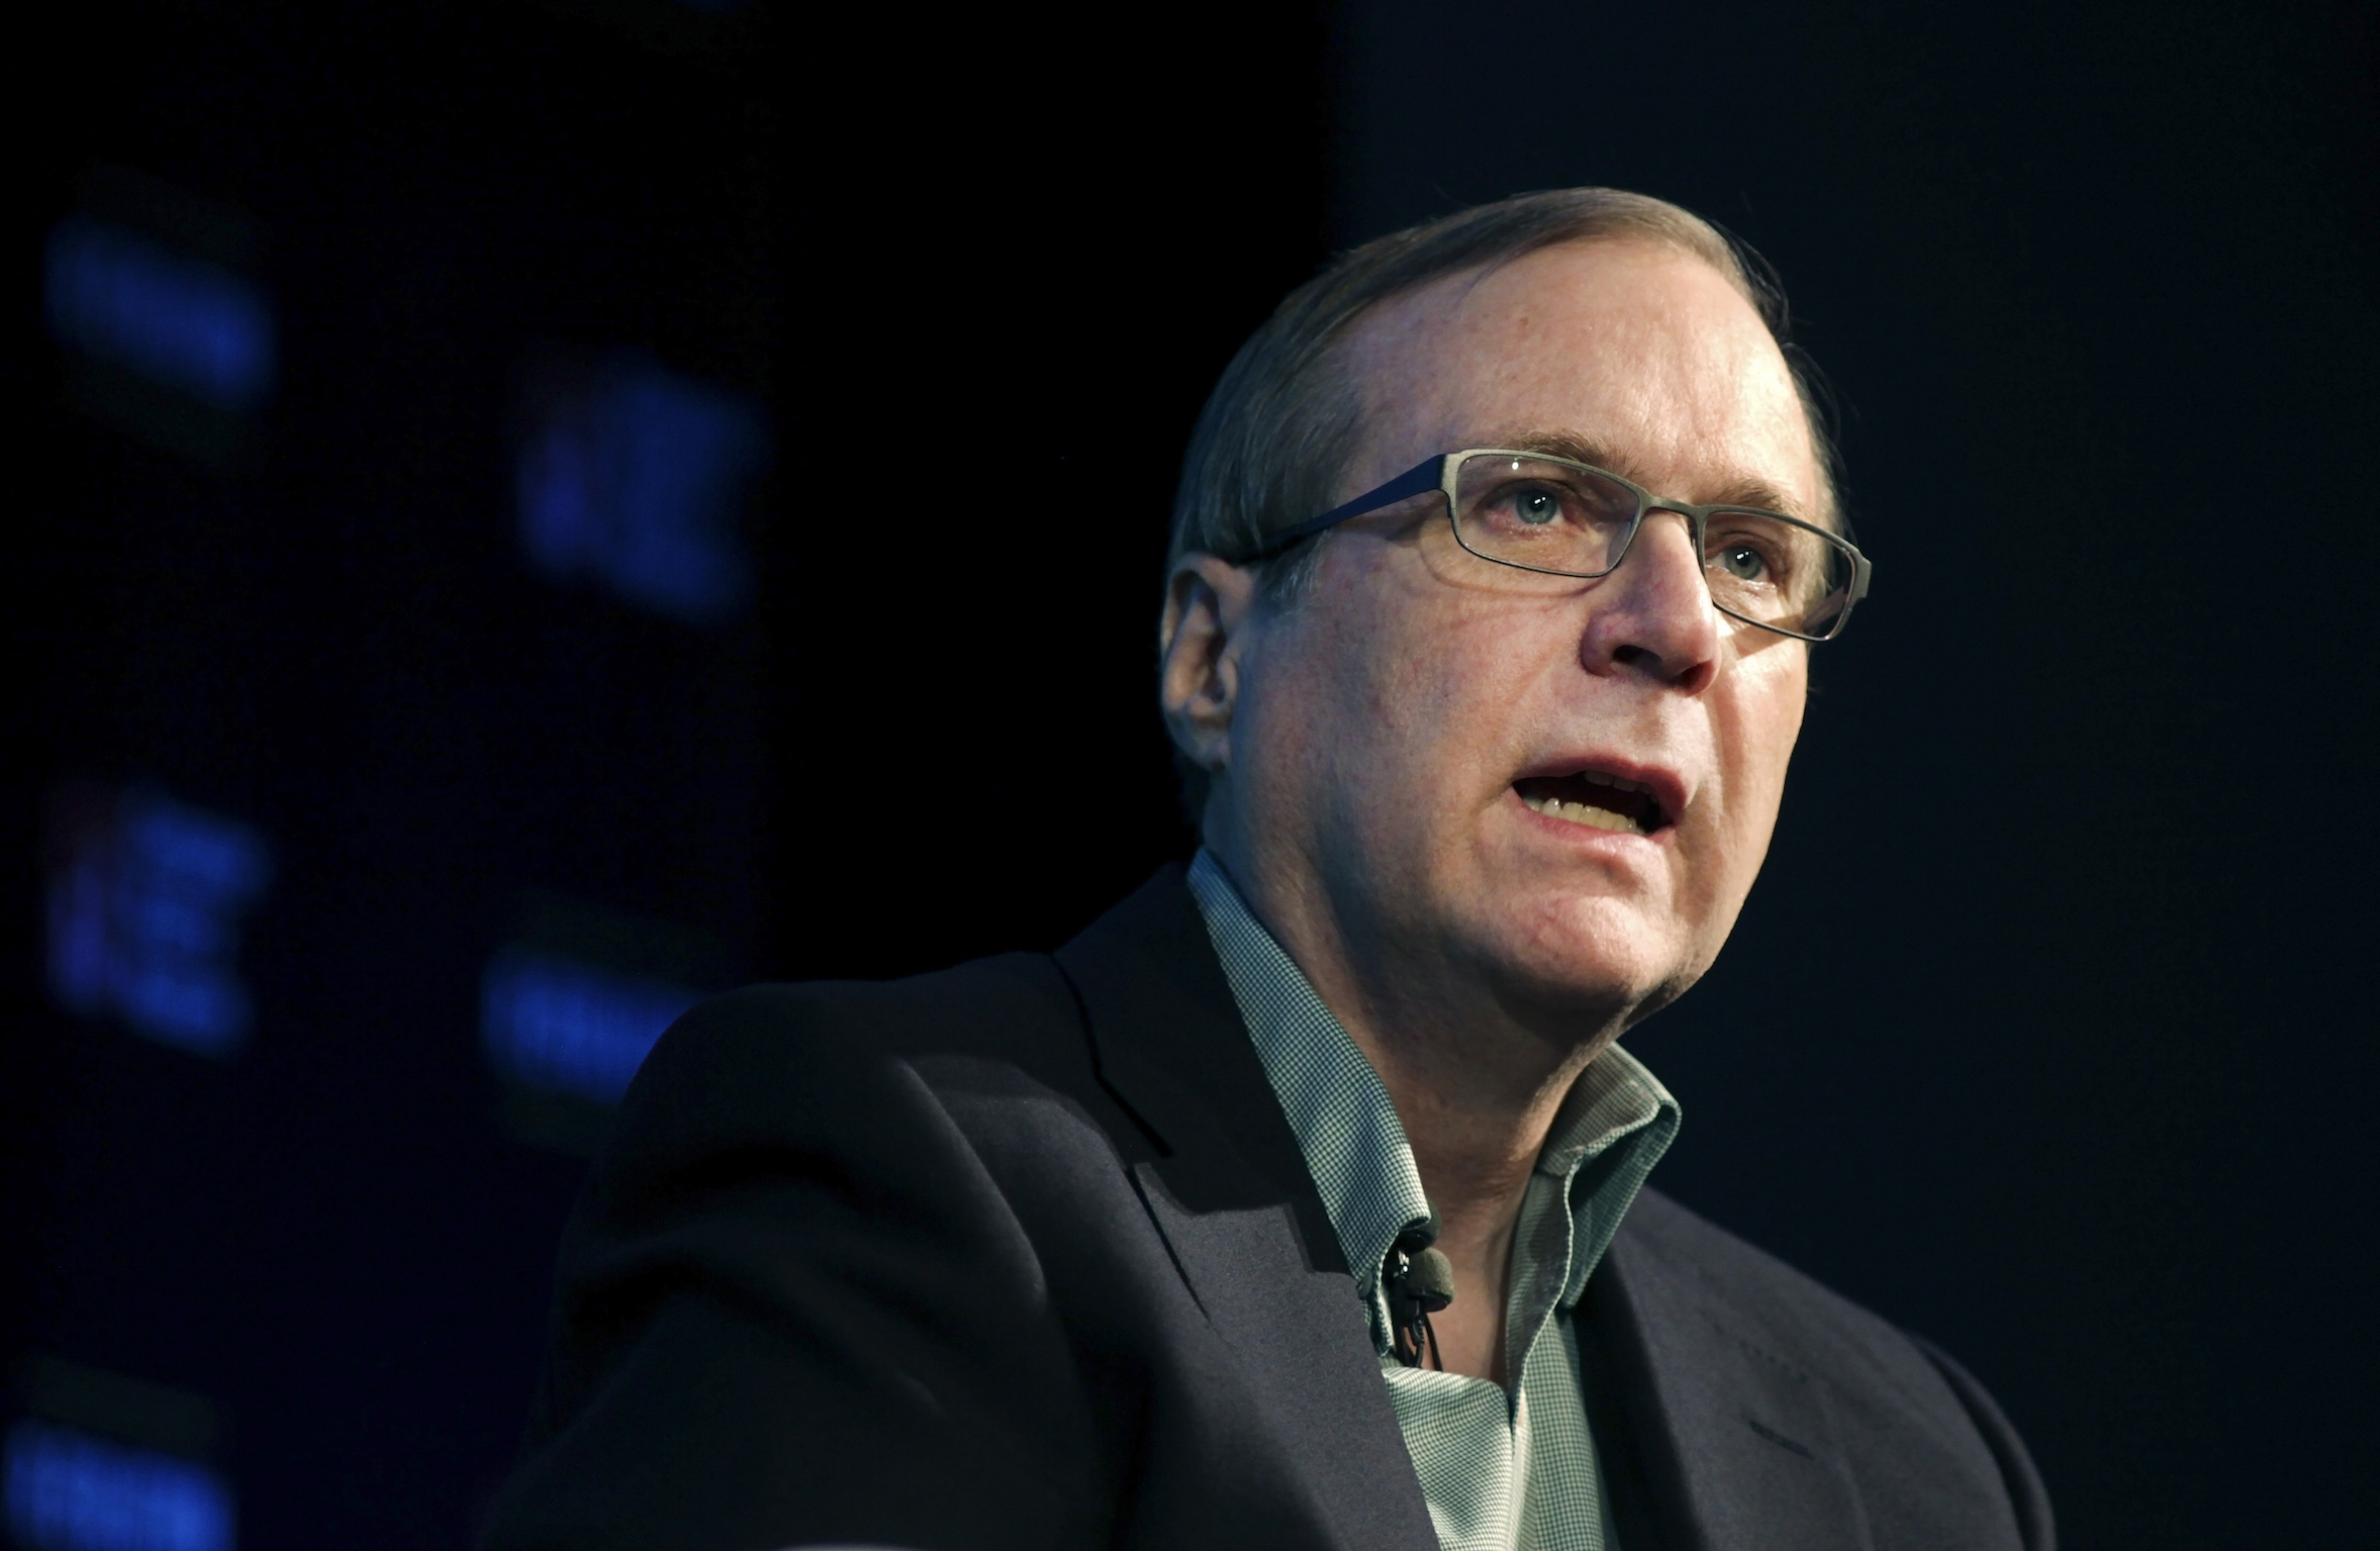 Microsoft co-founder Paul Allen discusses his new memoir  Idea Man  during an appearance at the Computer History Museum in Mountain View, Calif., in 2011.